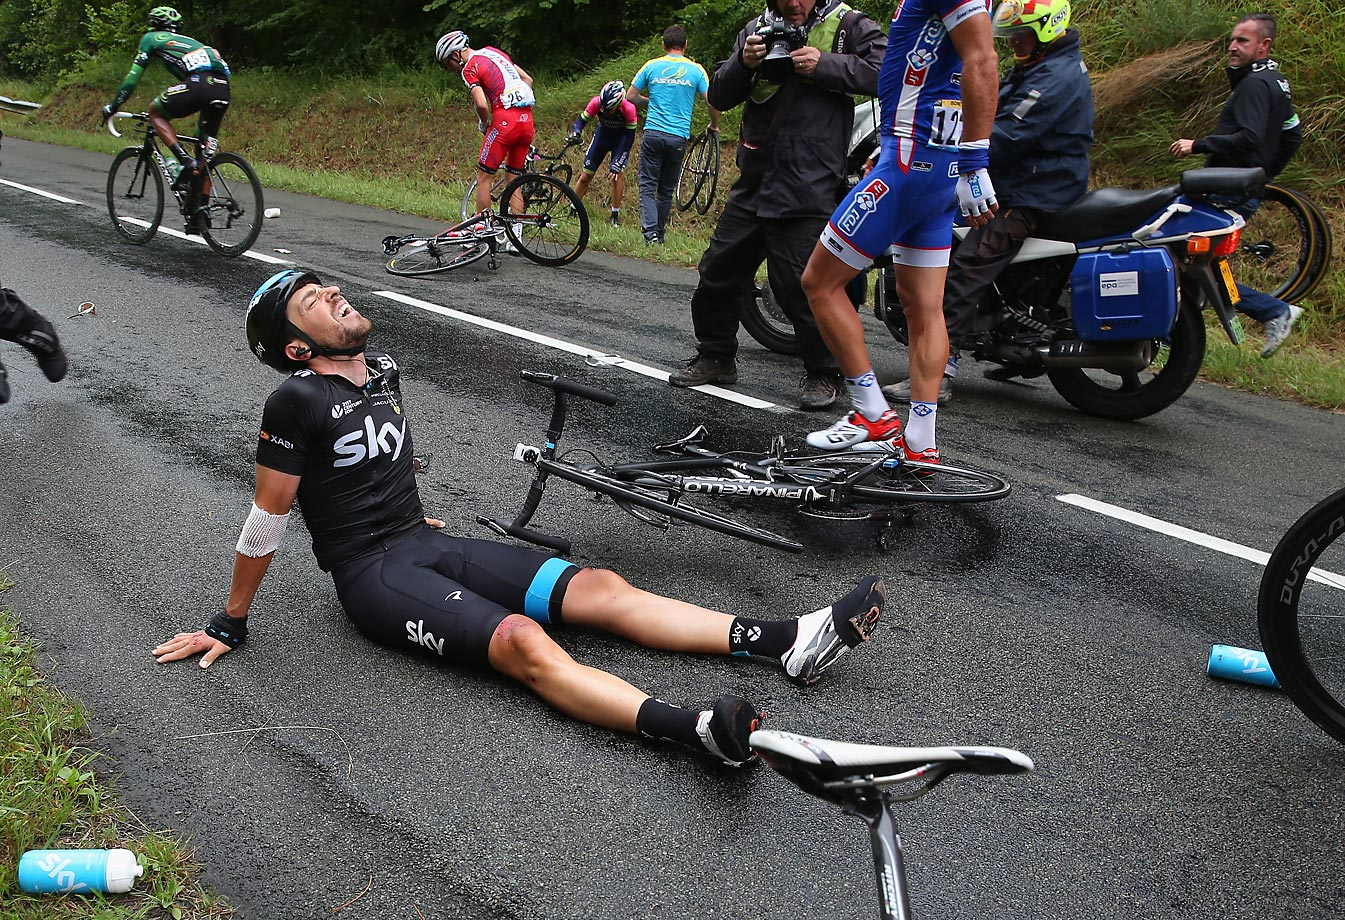 When it rains, it pours. A day after Froome pulled out, ceding Team Sky leadership to Richie Porte – who'd weathered a series of crashes himself – the man who Porte might have leaned on heavily in the high mountains, the reliable, 37-year-old Xabier Zandio, became entangled with some other riders and found himself sitting dazed on the pavement, then, shortly after, staring up at the roof of an ambulance. Porte will miss him in the second half of the race.